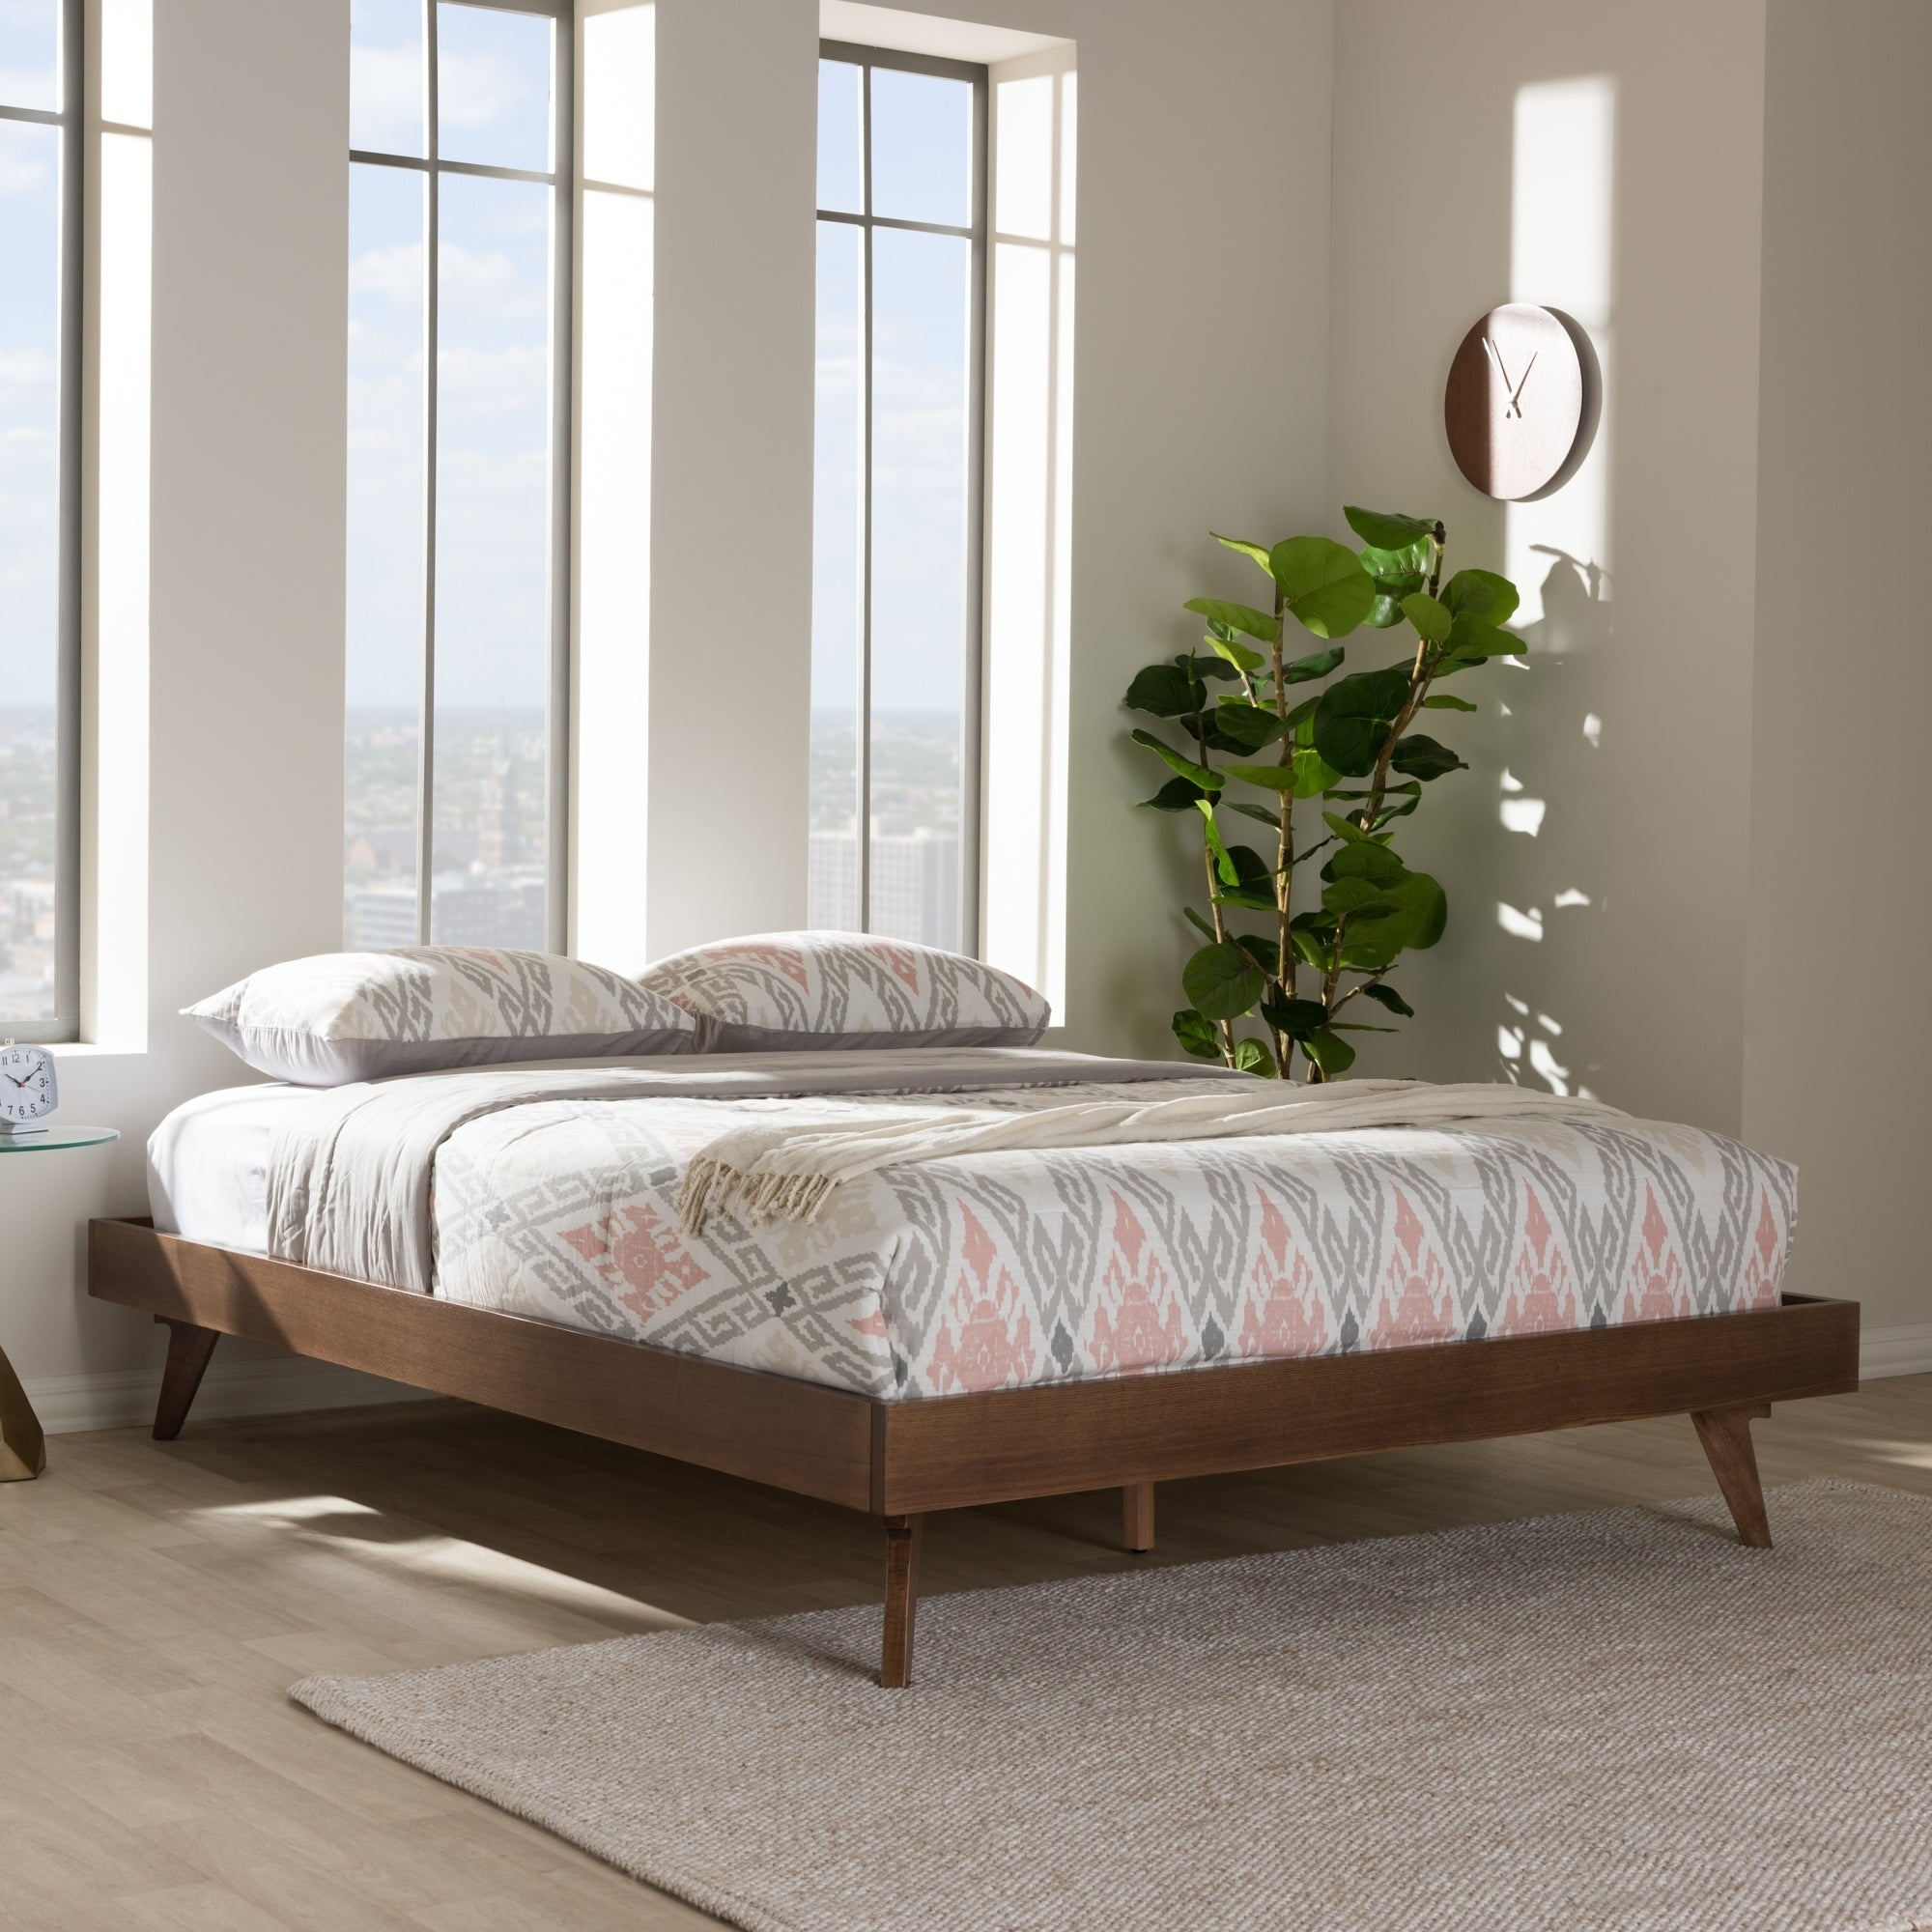 Shop Mid Century Walnut Brown Wood Bed Frame By Baxton Studio Overstock 18227871